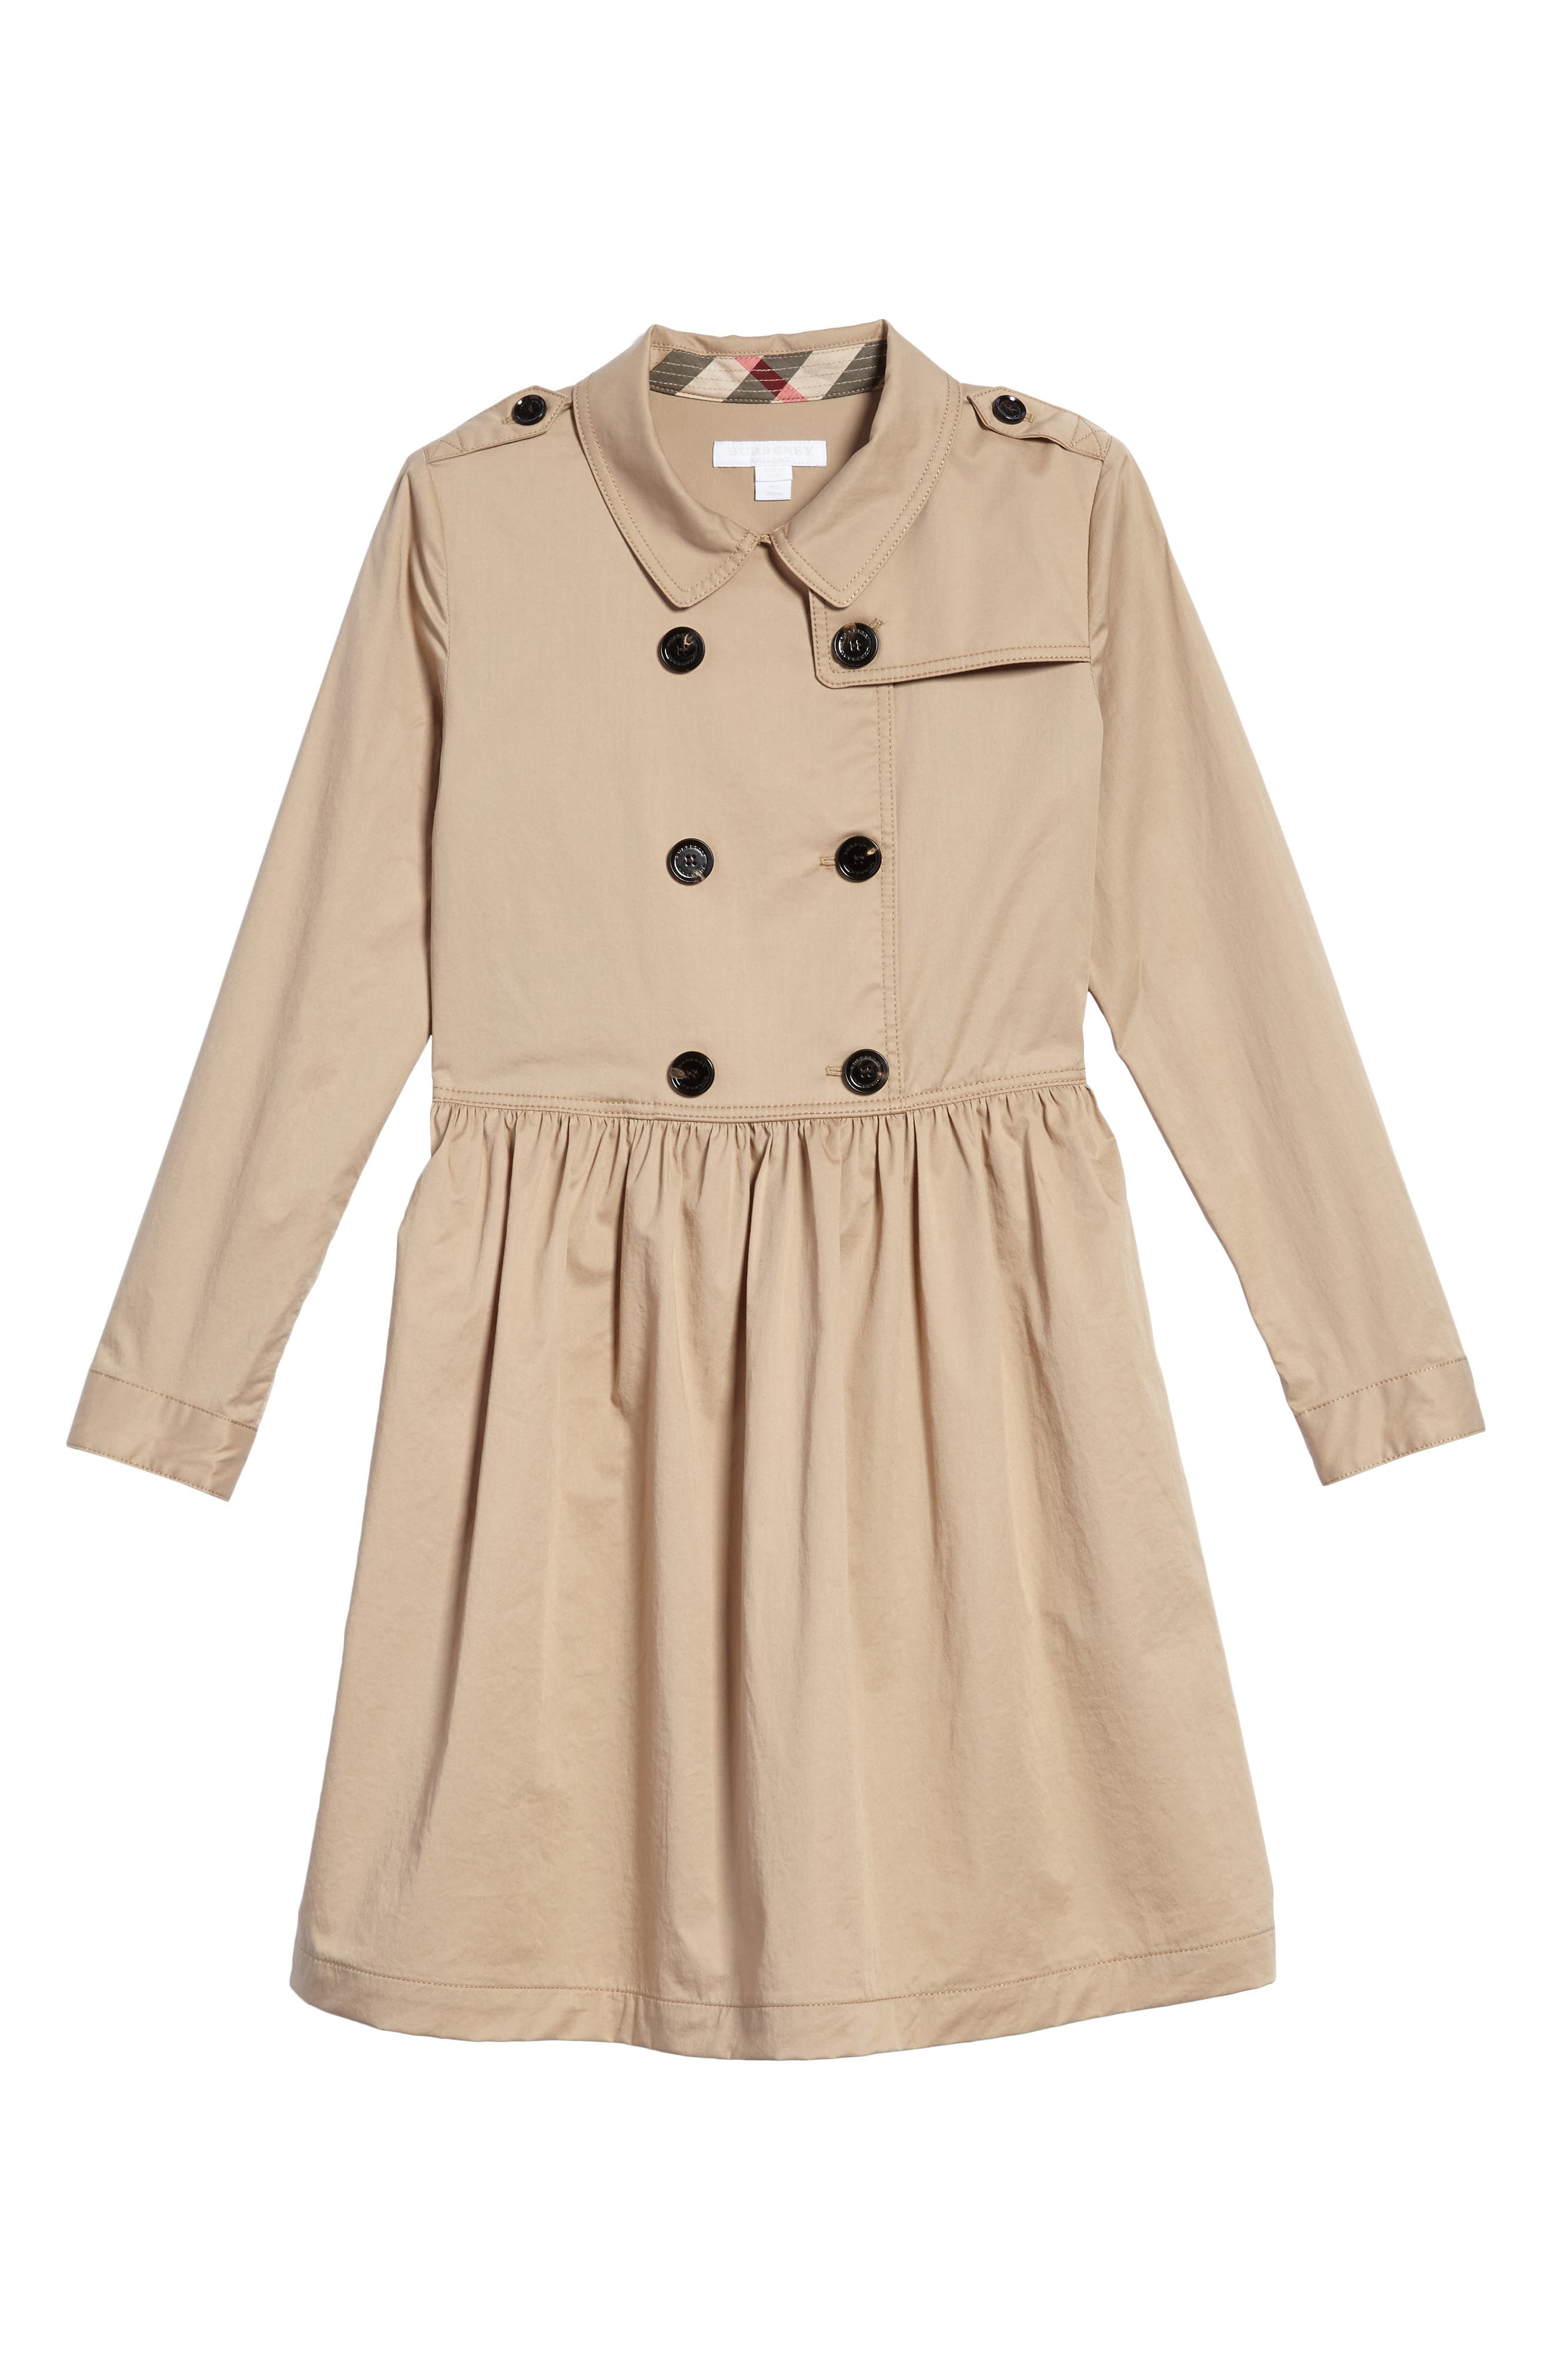 Main Image - Burberry Lillyana Trench Dress (Little Girls & Big Girls)